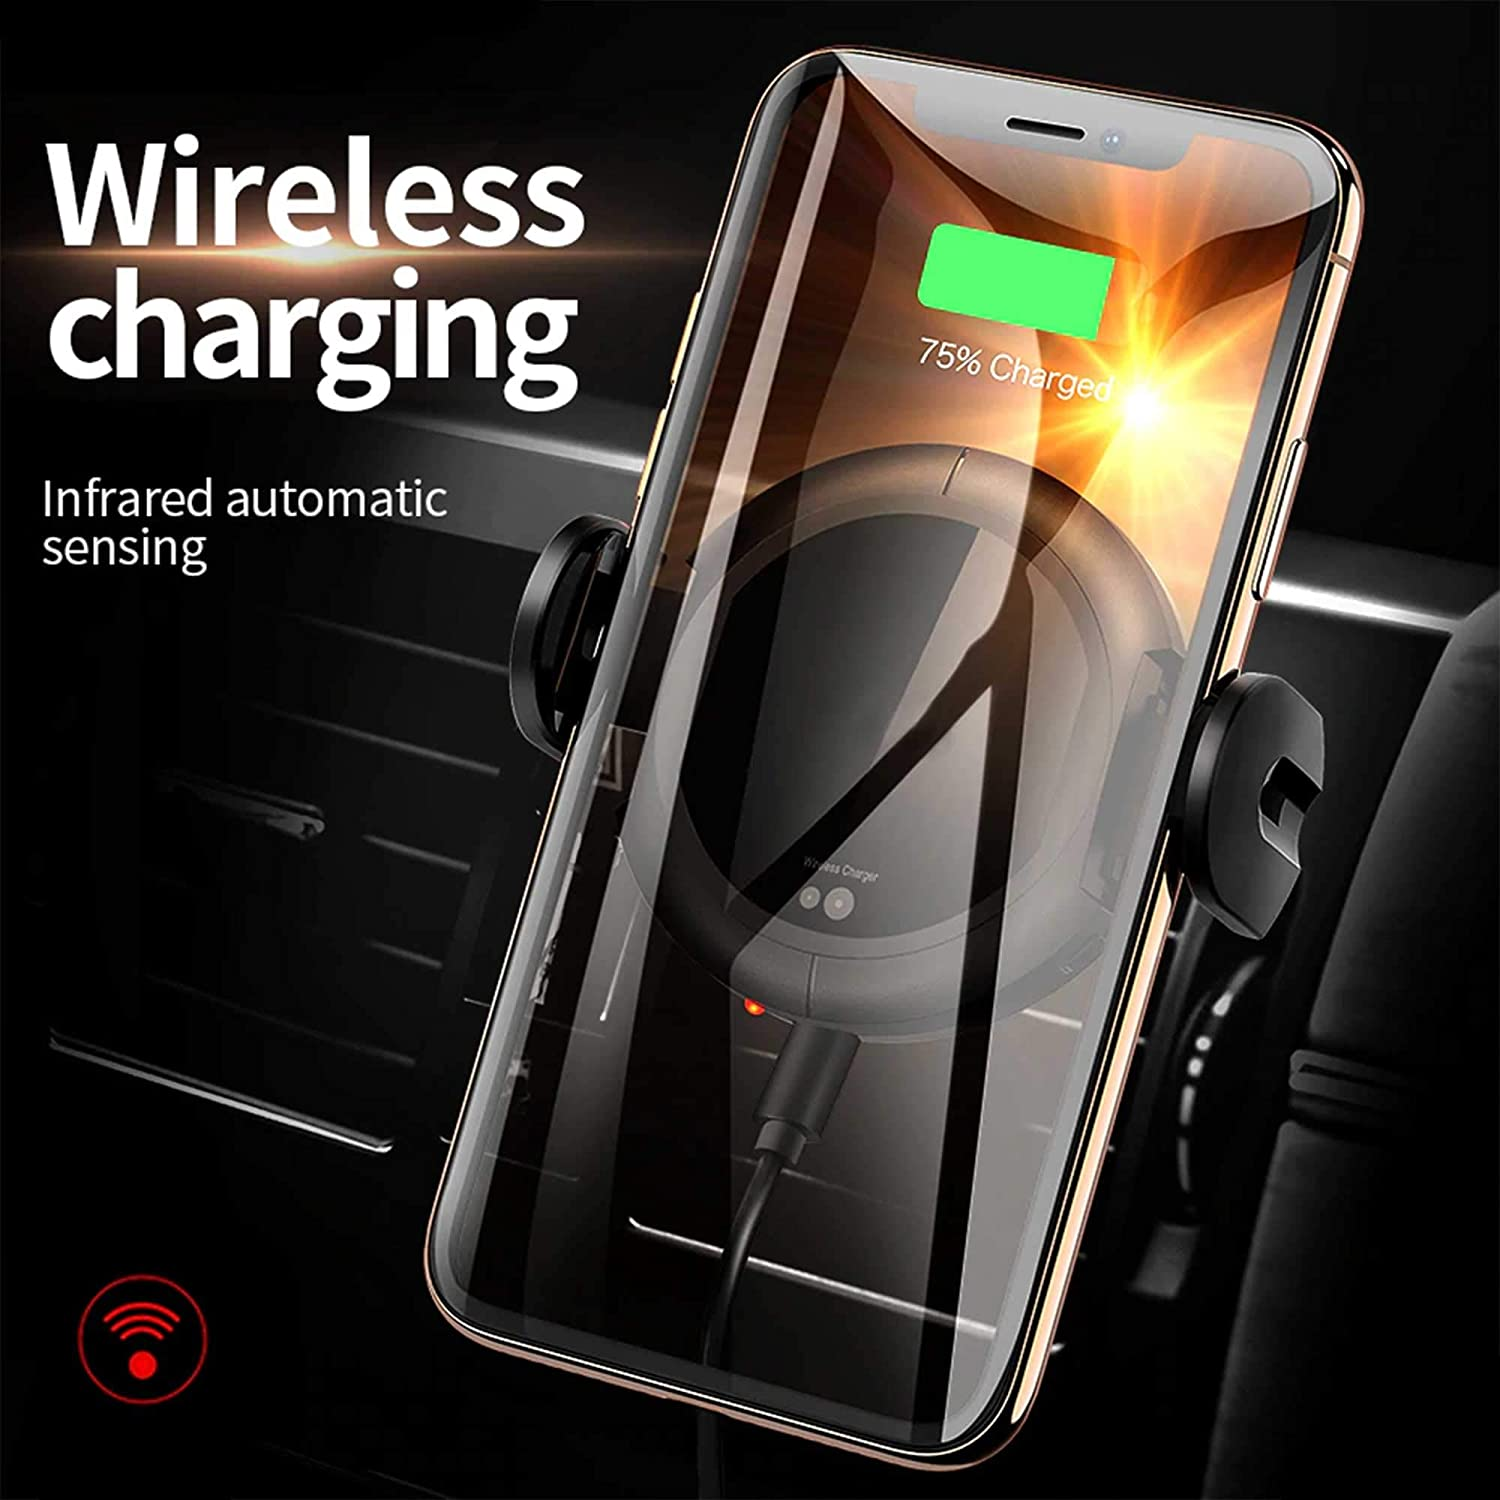 Fast Charging Compatible with iPhone 8//8 Plus//X//Xs//Xs Max//Xr Samsung Galaxy S10//S10+//S9//S9+//S8//S8+// Car Phone Holder Air Vent Dashboard Wireless Car Charger Mount Auto Liberator 7.5W //10W